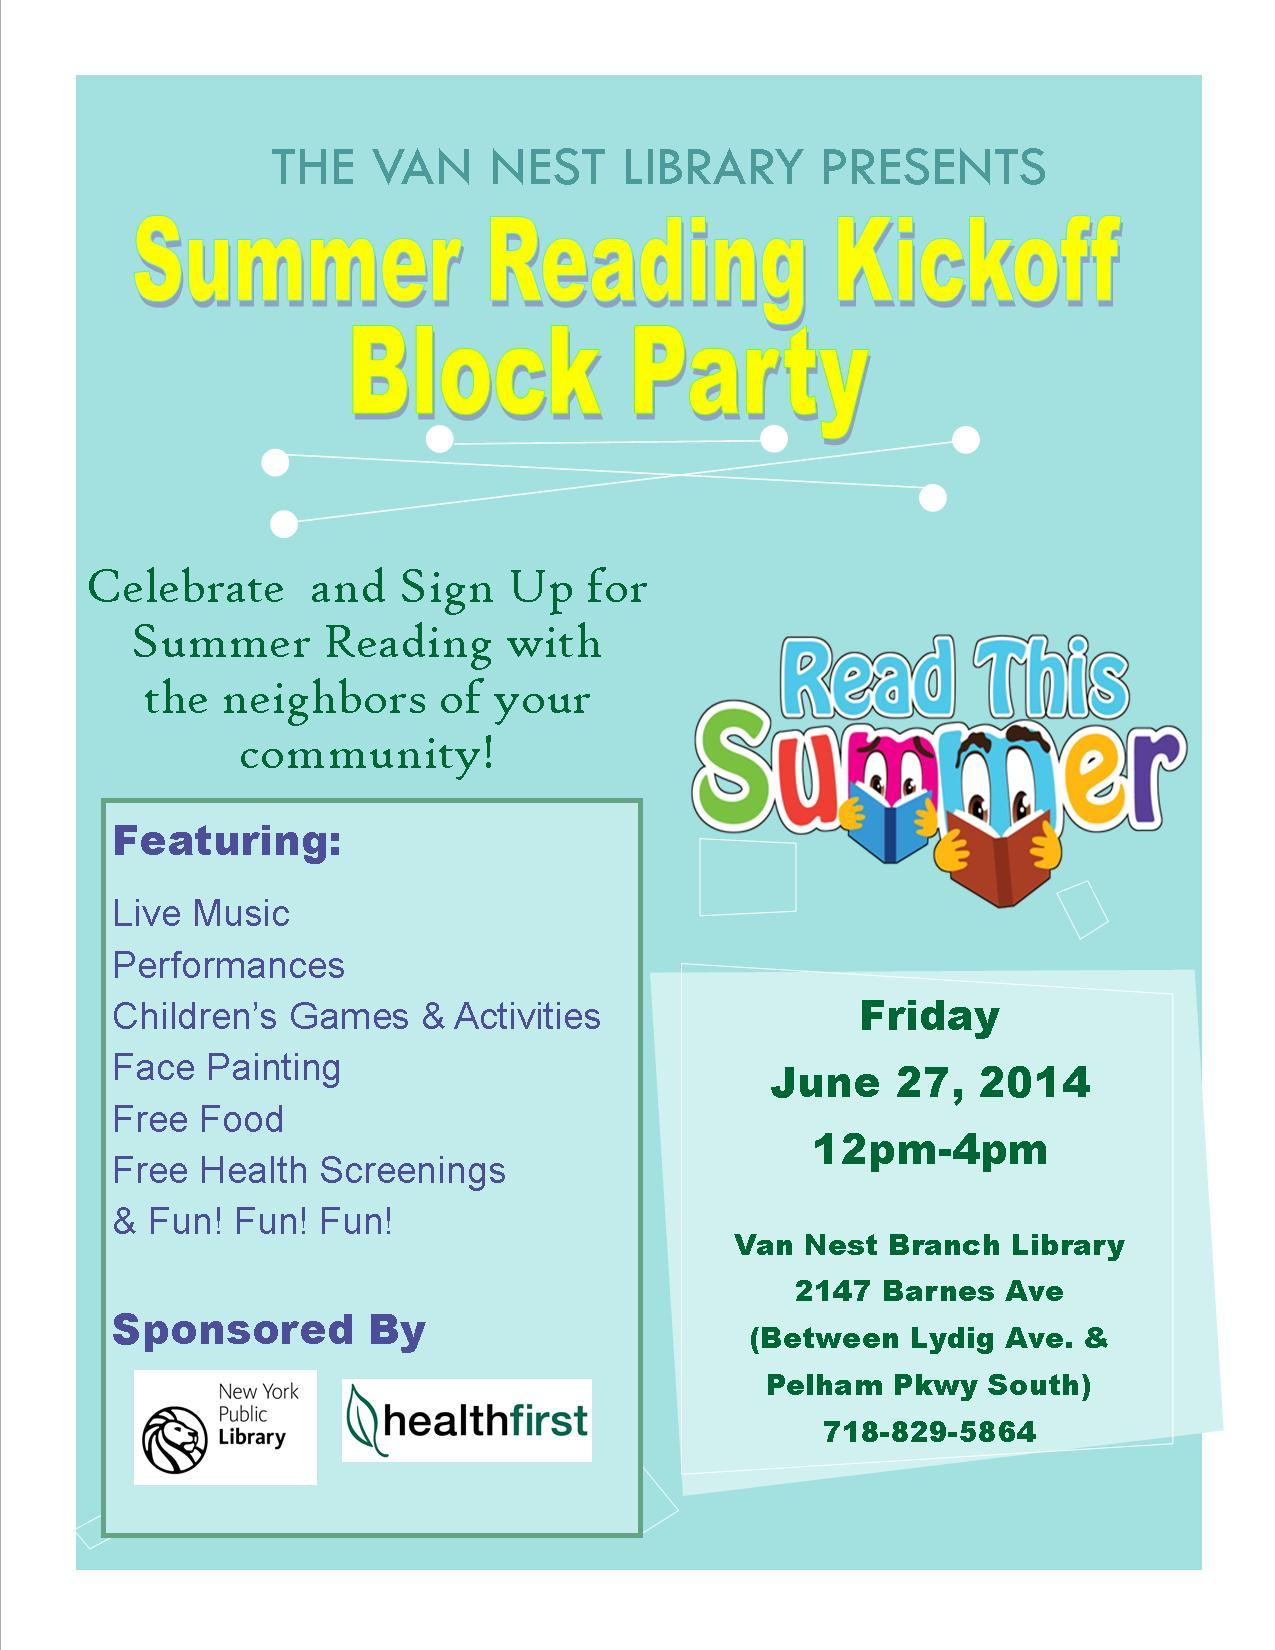 Summer Reading Kickoff Block Party